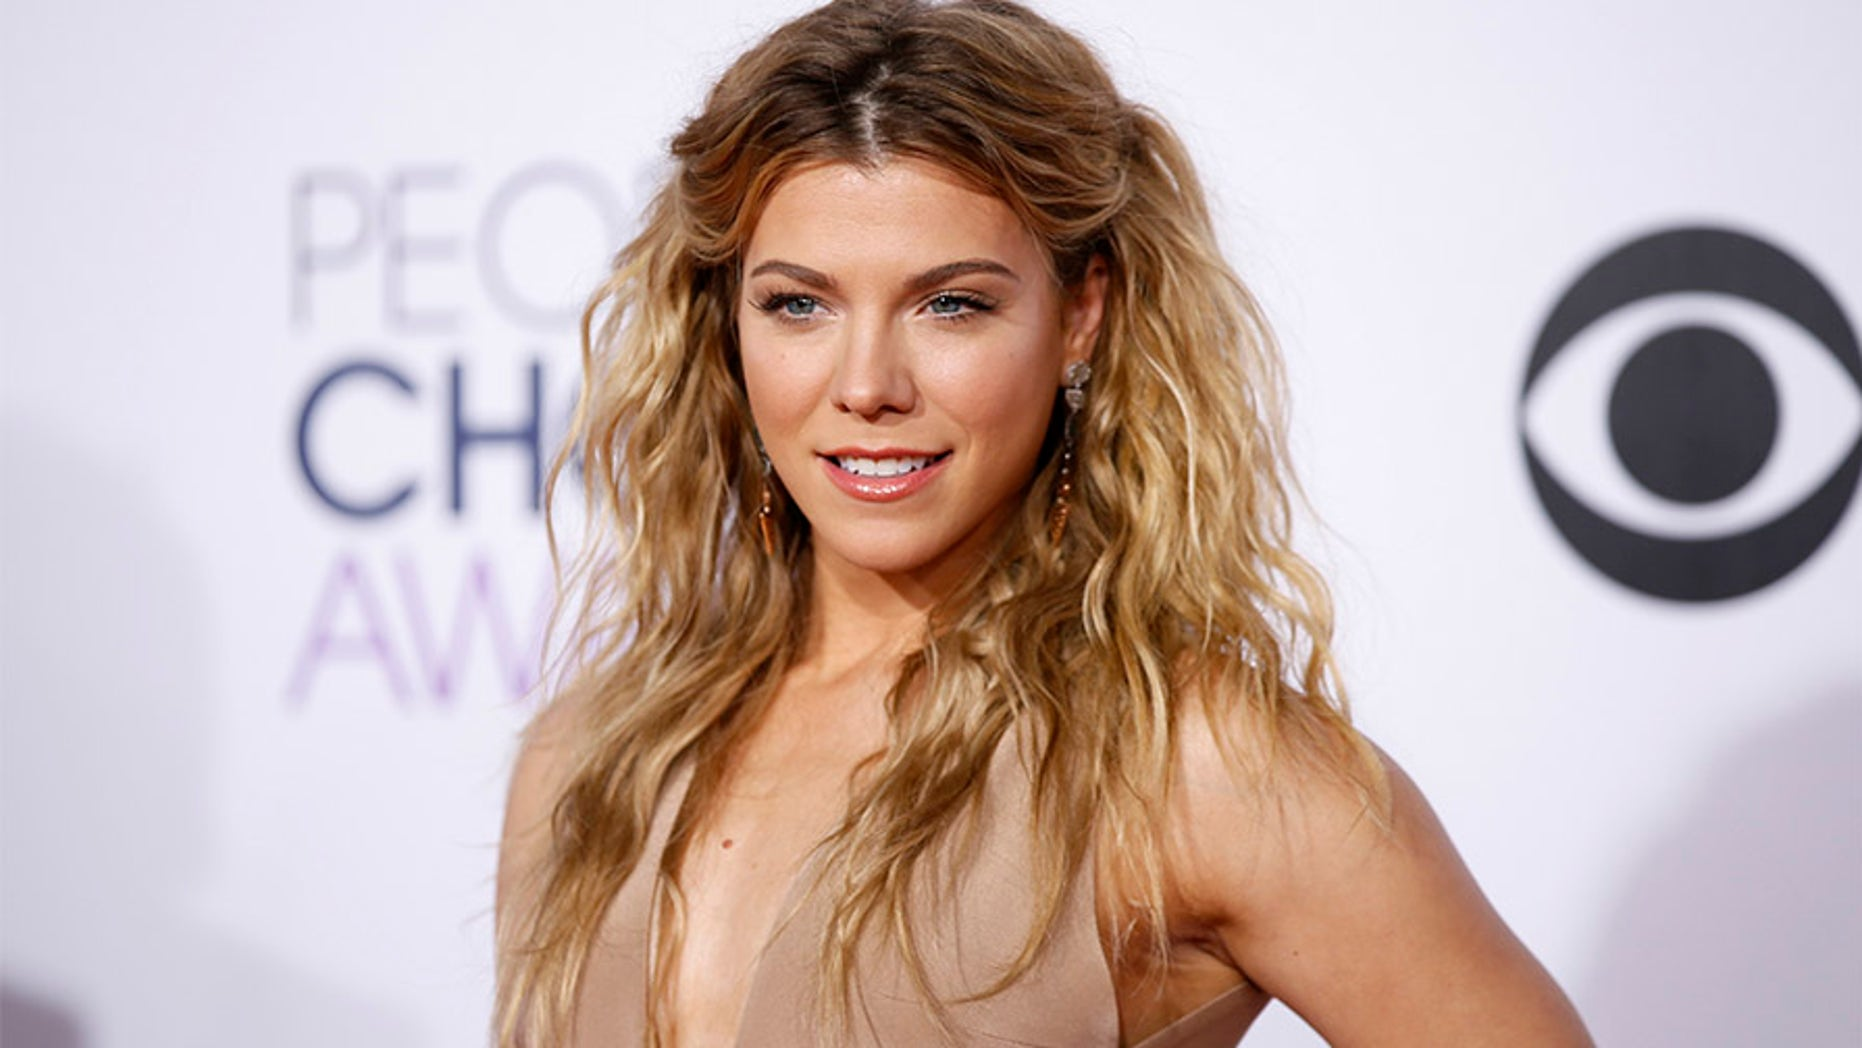 Kimberly Perry, from The Band Perry, arrives at the 2015 People's Choice Awards in Los Angeles.